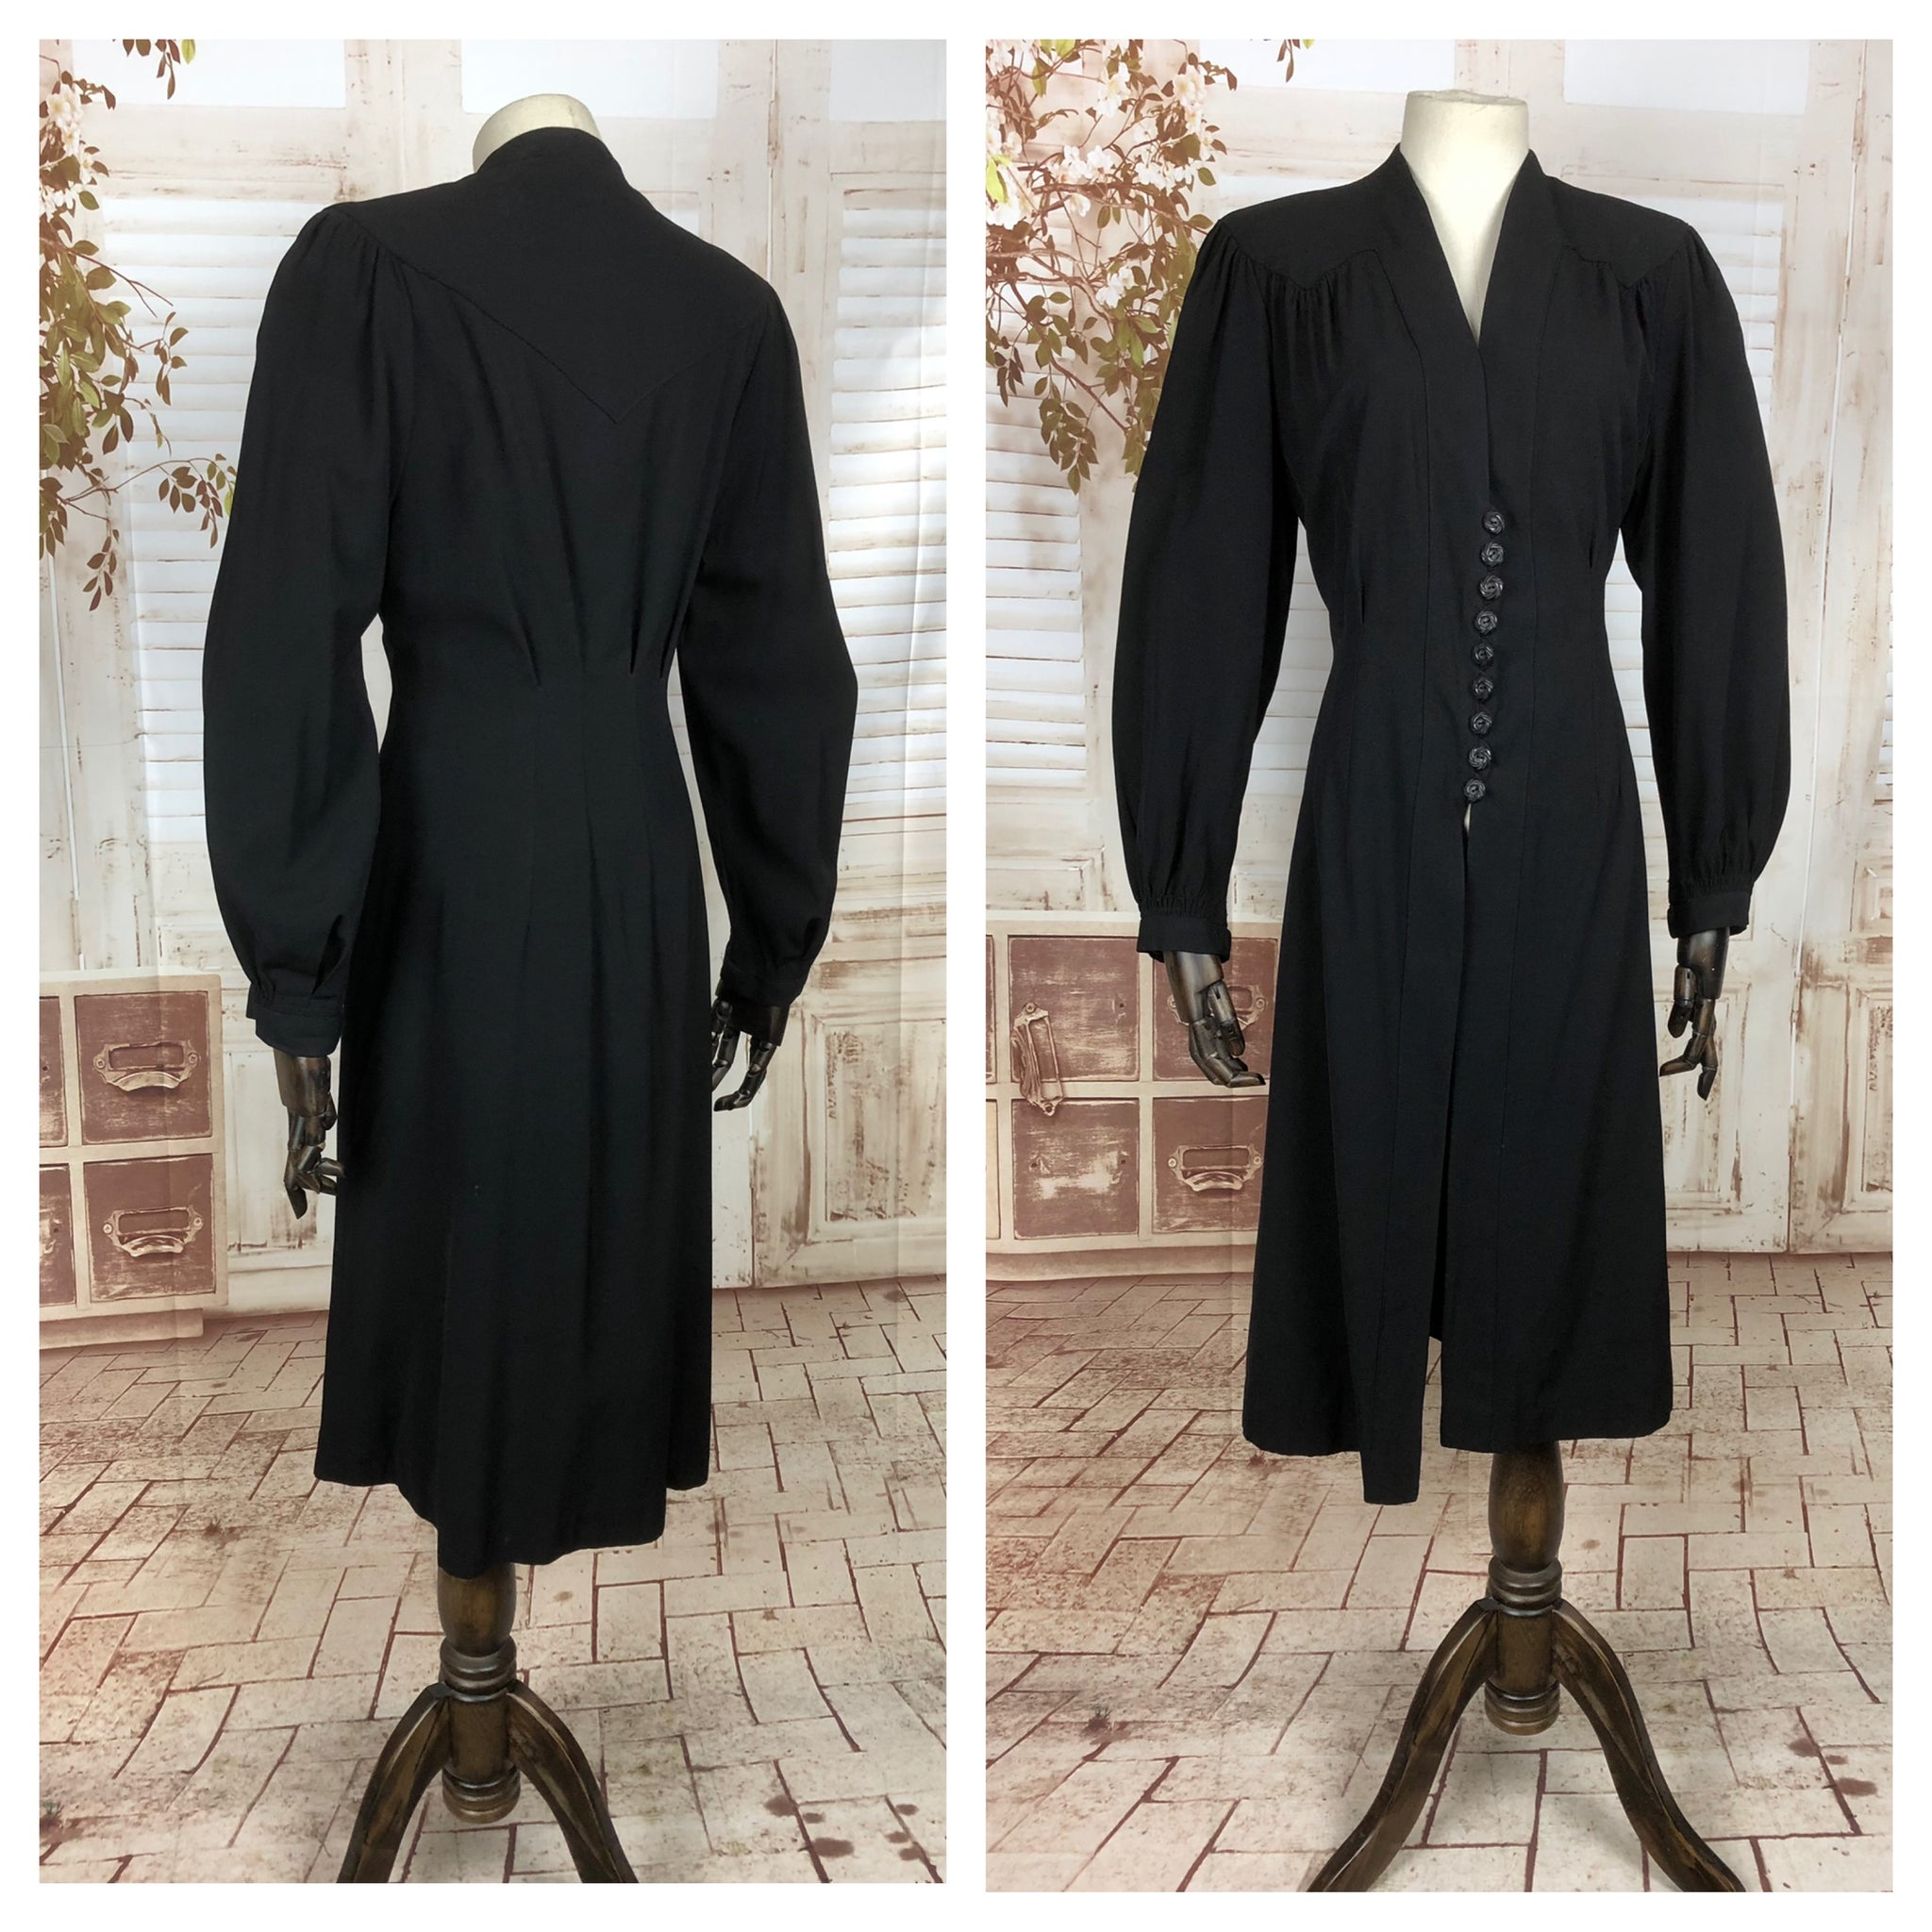 Original Vintage 1930s 30s Black Cotton Princess Coat With Bishop Sleeves And Bakelite Buttons